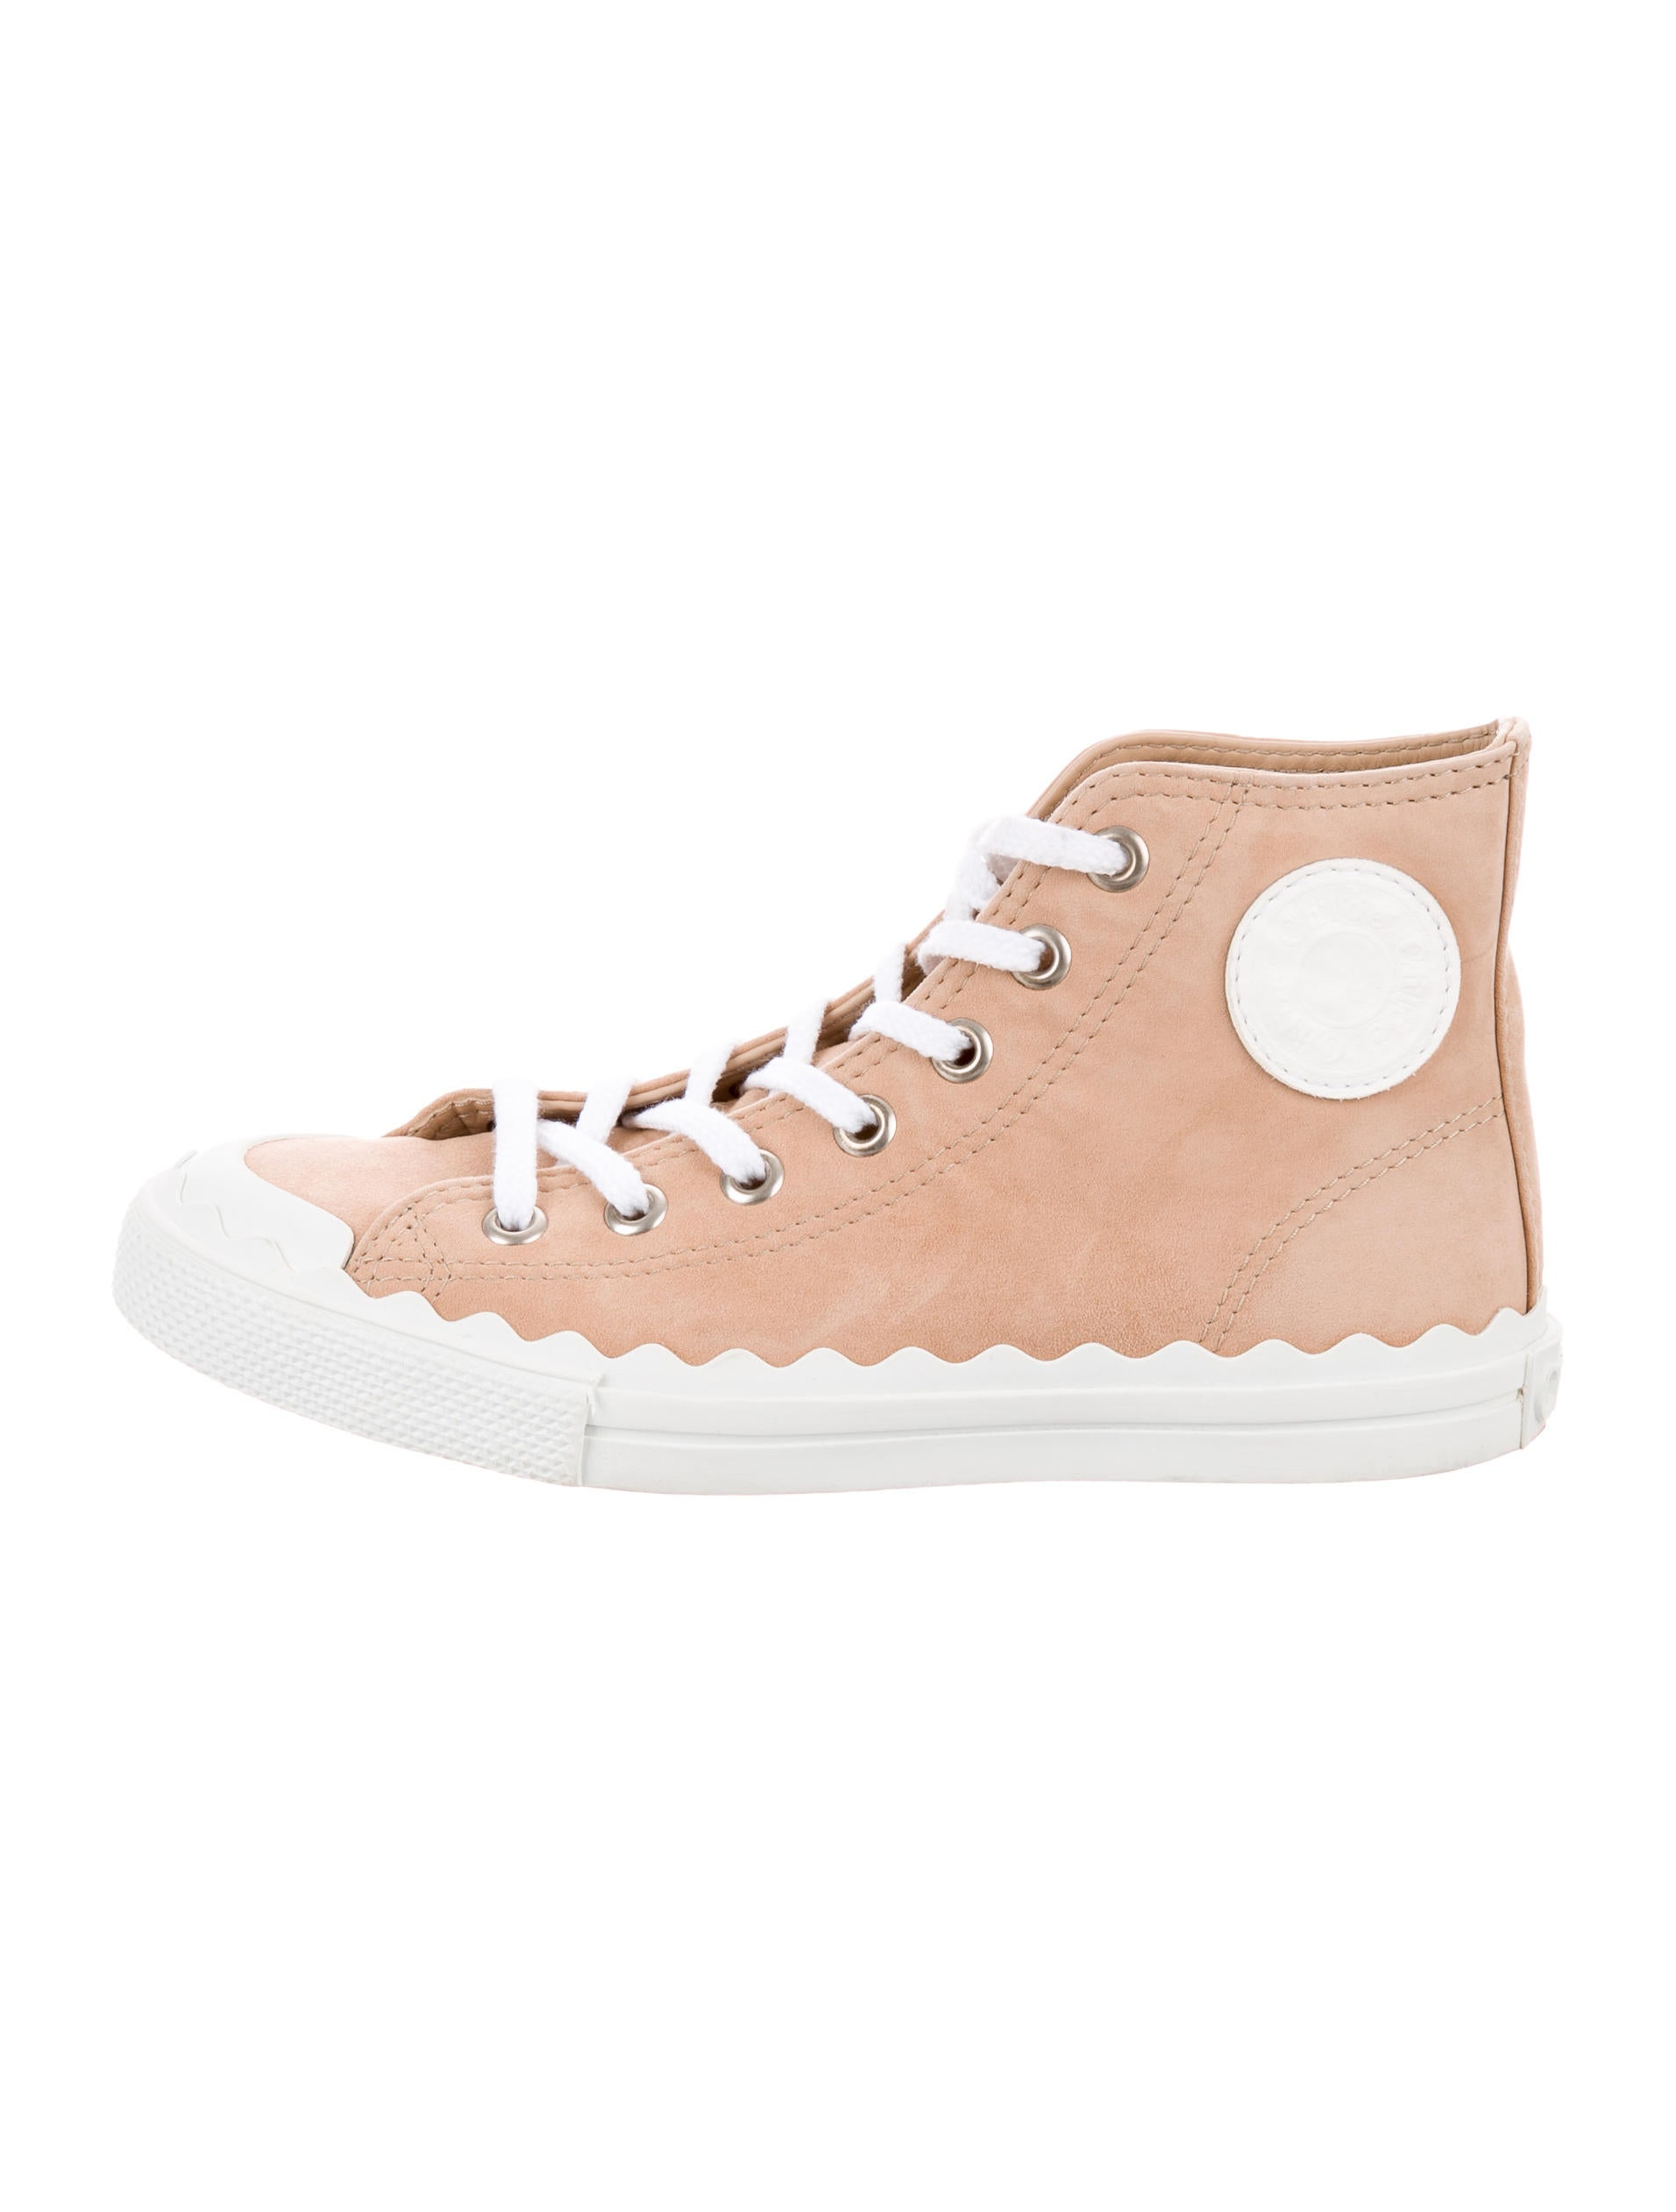 latest Chloé Tan Suede High-Top Sneakers free shipping countdown package JtL0tth